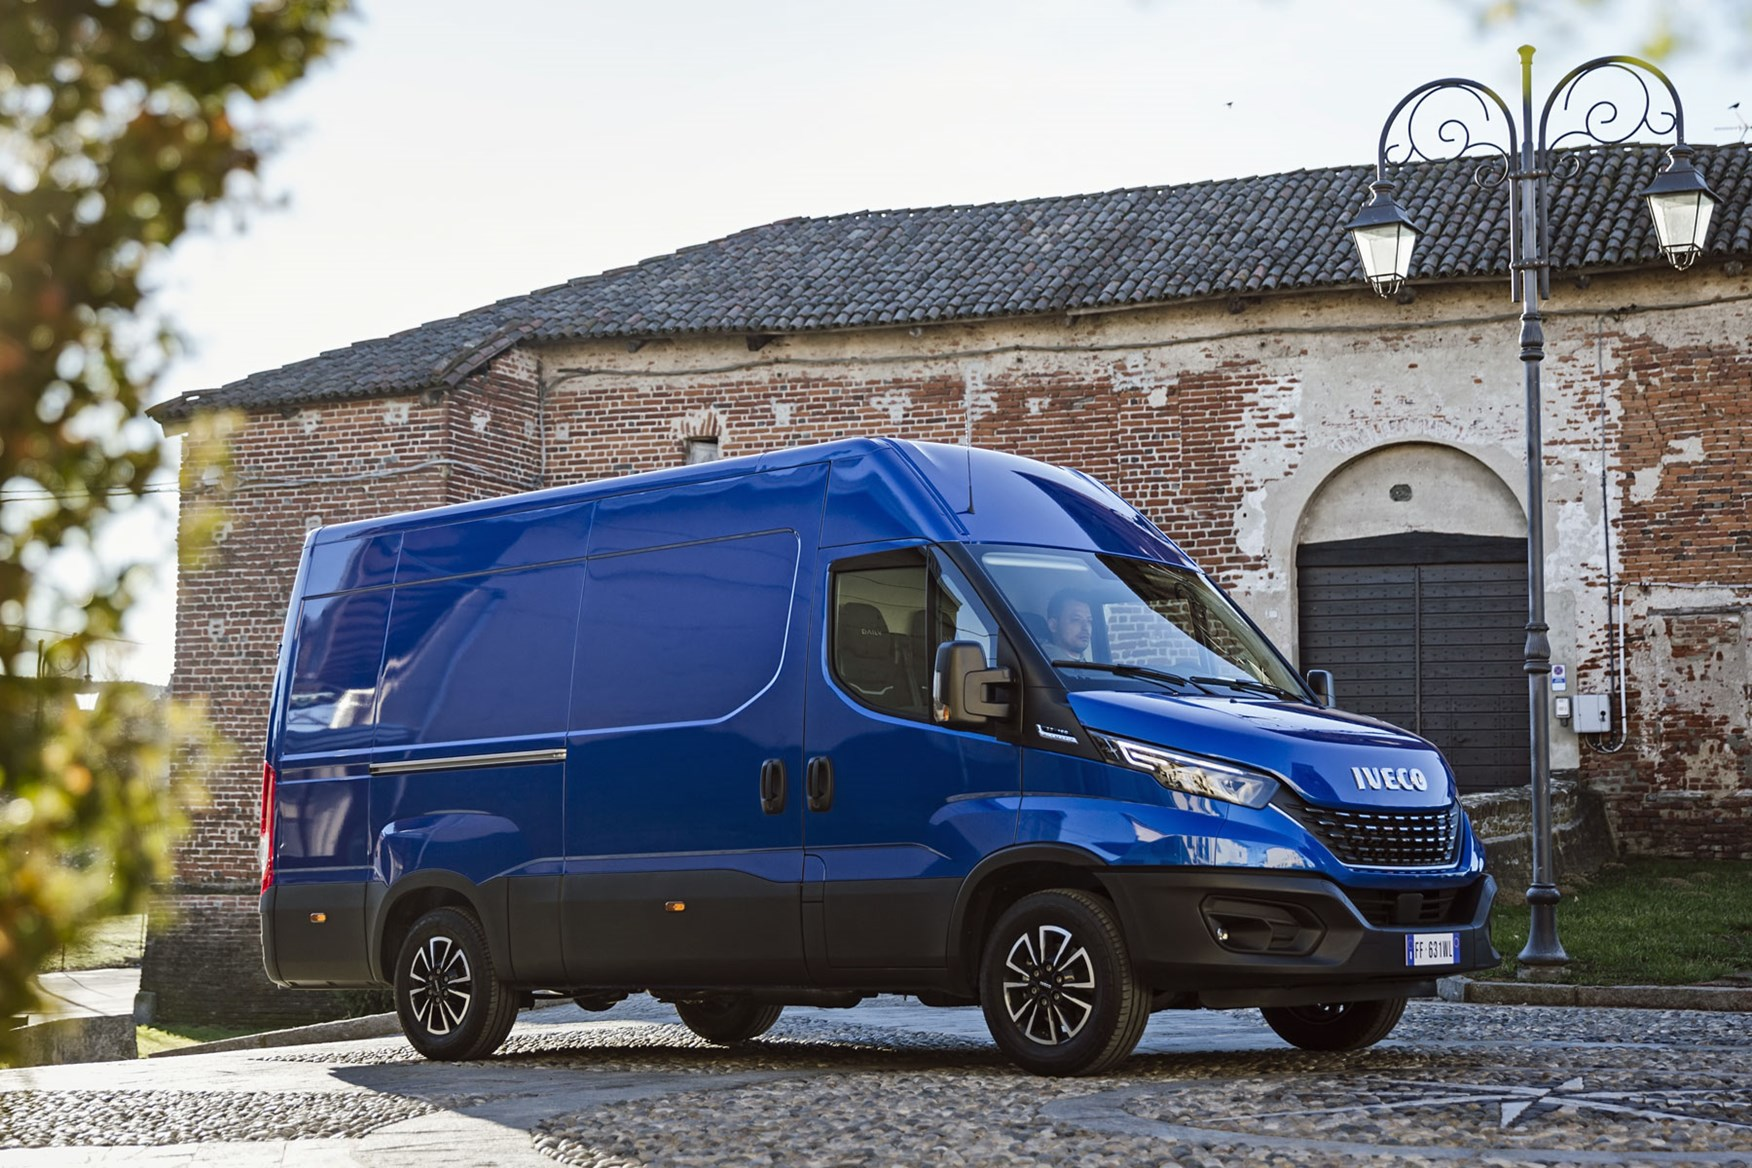 Iveco Daily 2019 review - front side view, panel van, blue